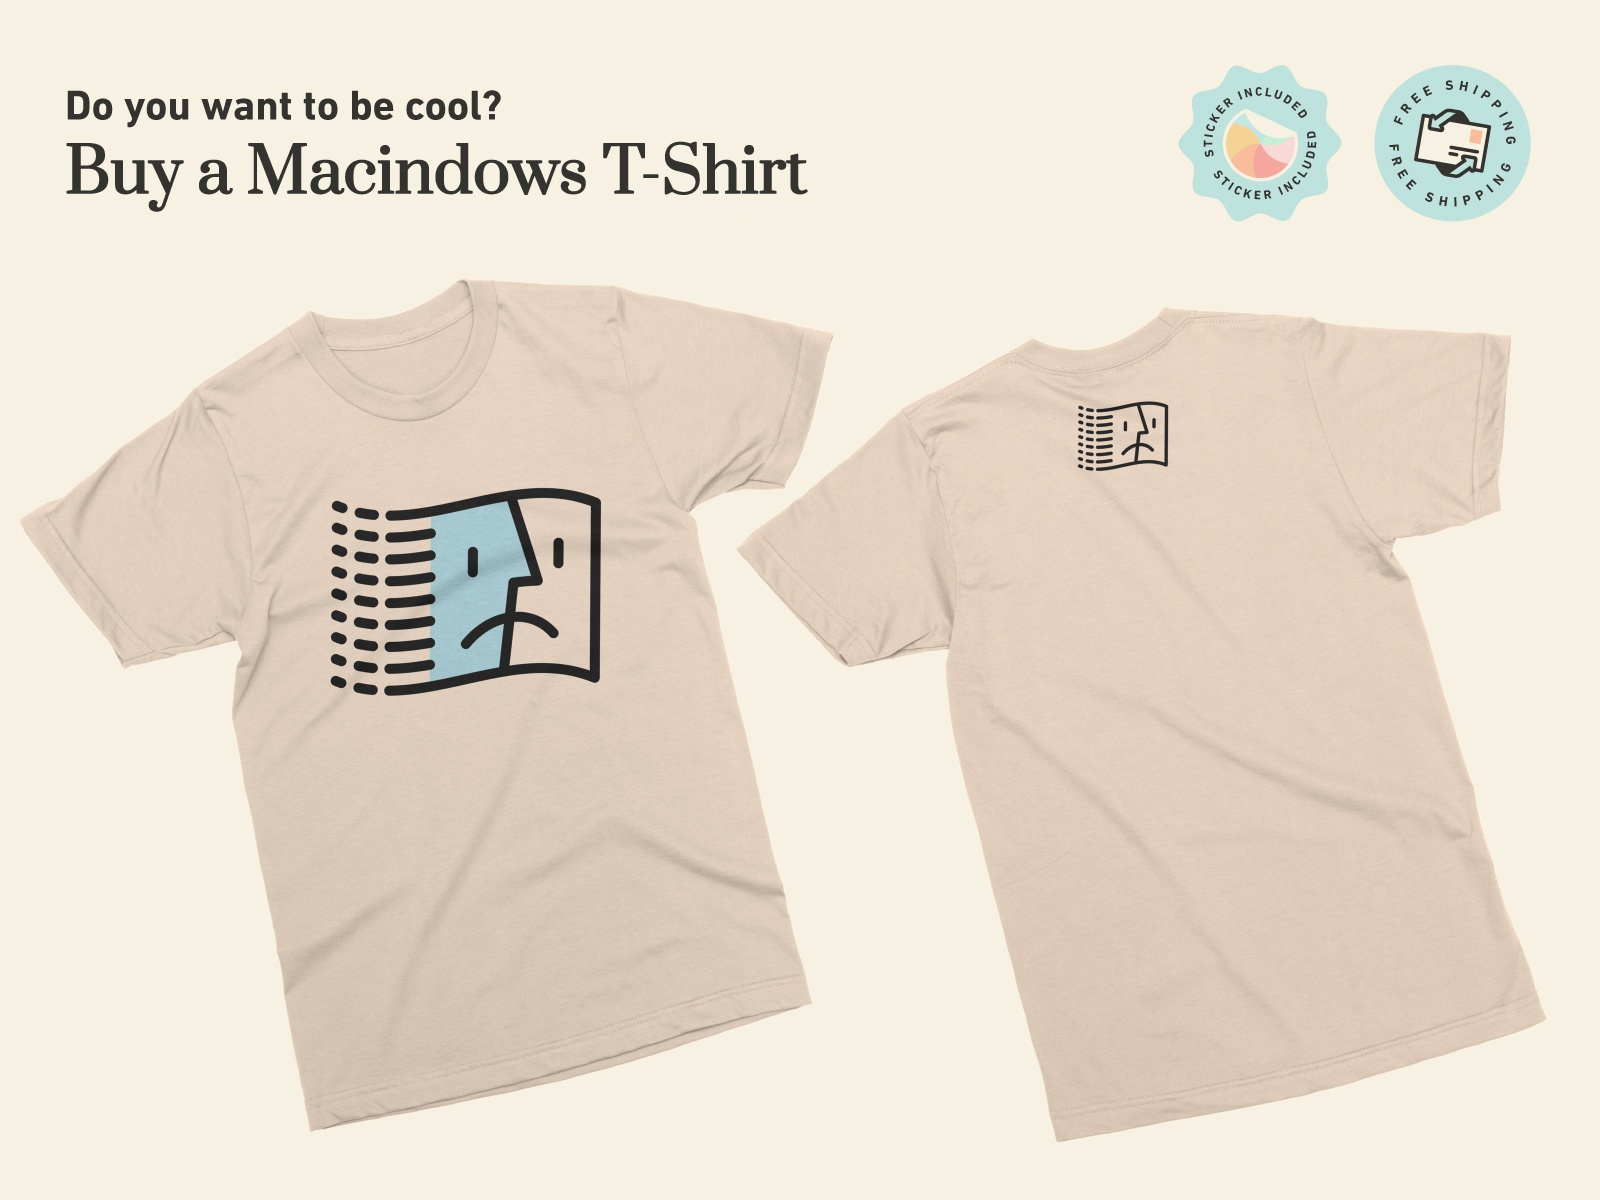 Macindows mockup